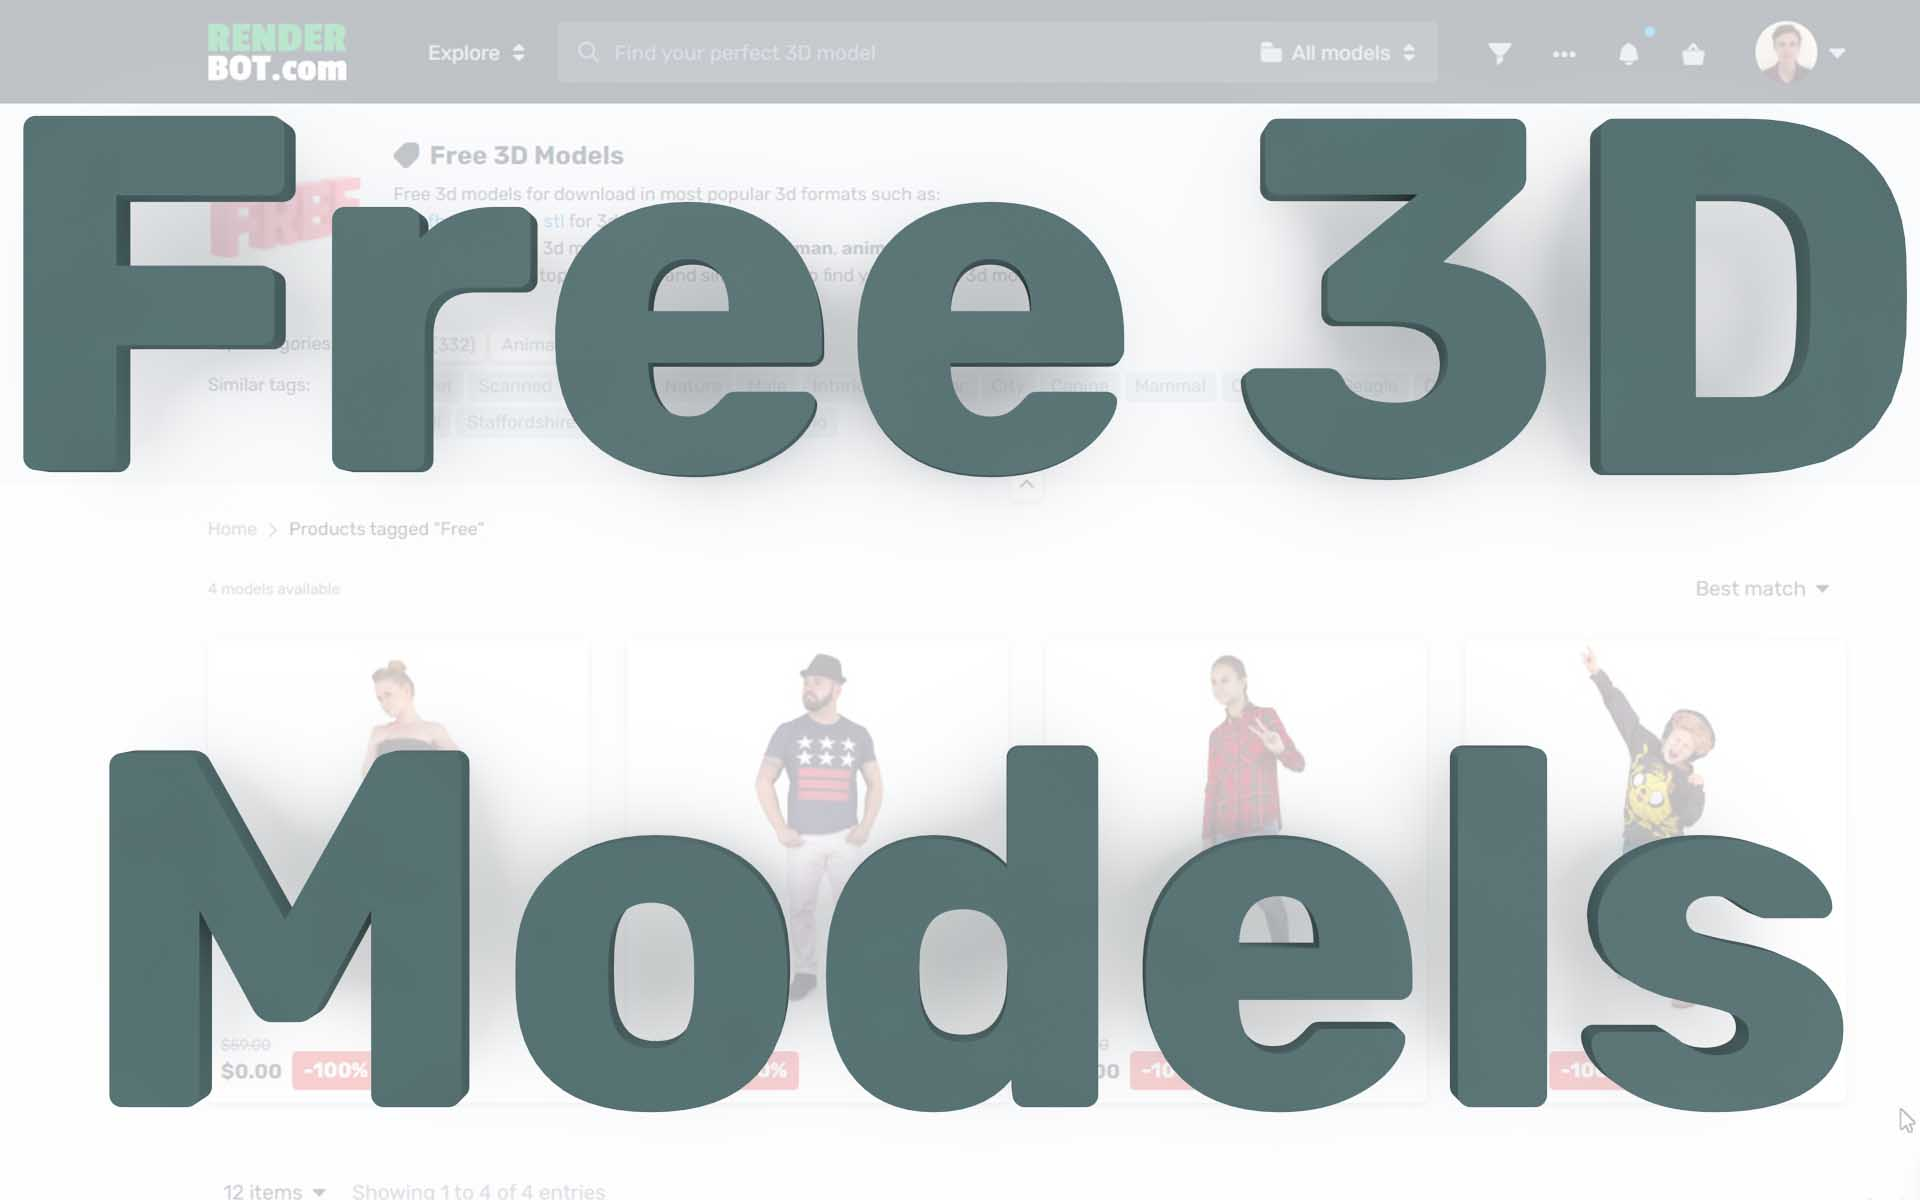 Case of free 3d models. How to download and use 3d models for free